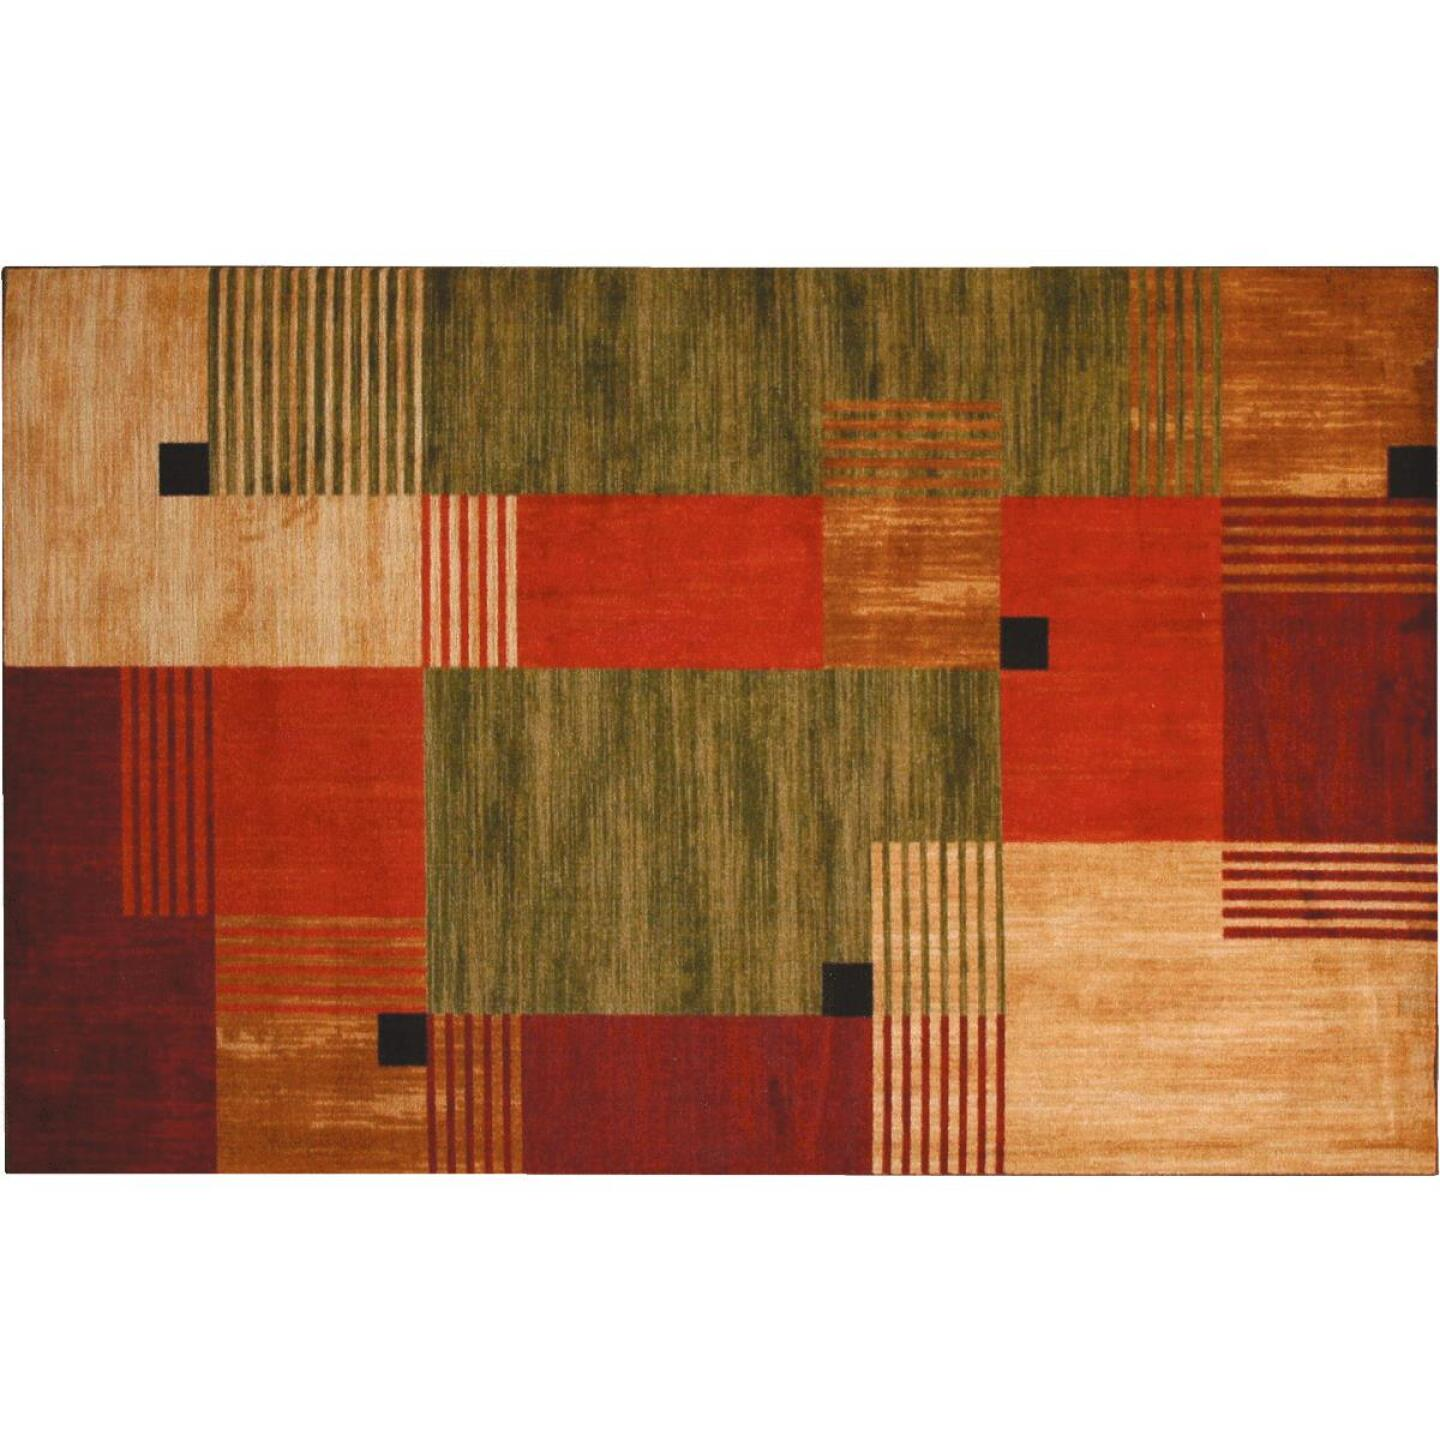 Mohawk Home Alliance Multi-Color 1 Ft. 8 In. x 2 Ft. 10 In. Accent Rug Image 1